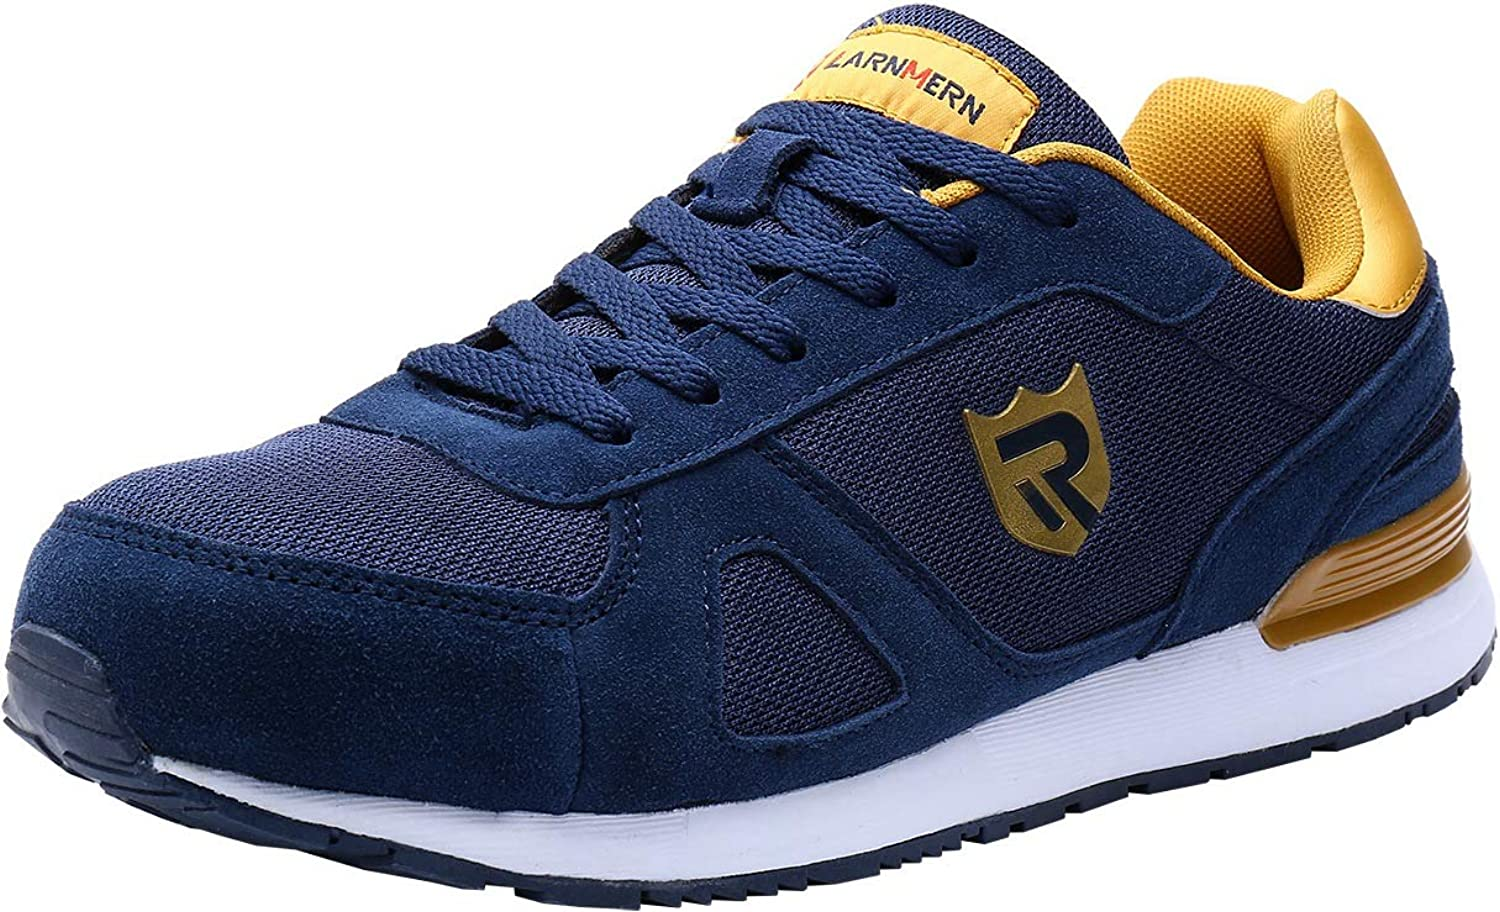 Steel Toe Safety shoes, LM-123 Mens Breathable and Light Weight Anti-Smashing Work Trainers (8 UK, Dark bluee)